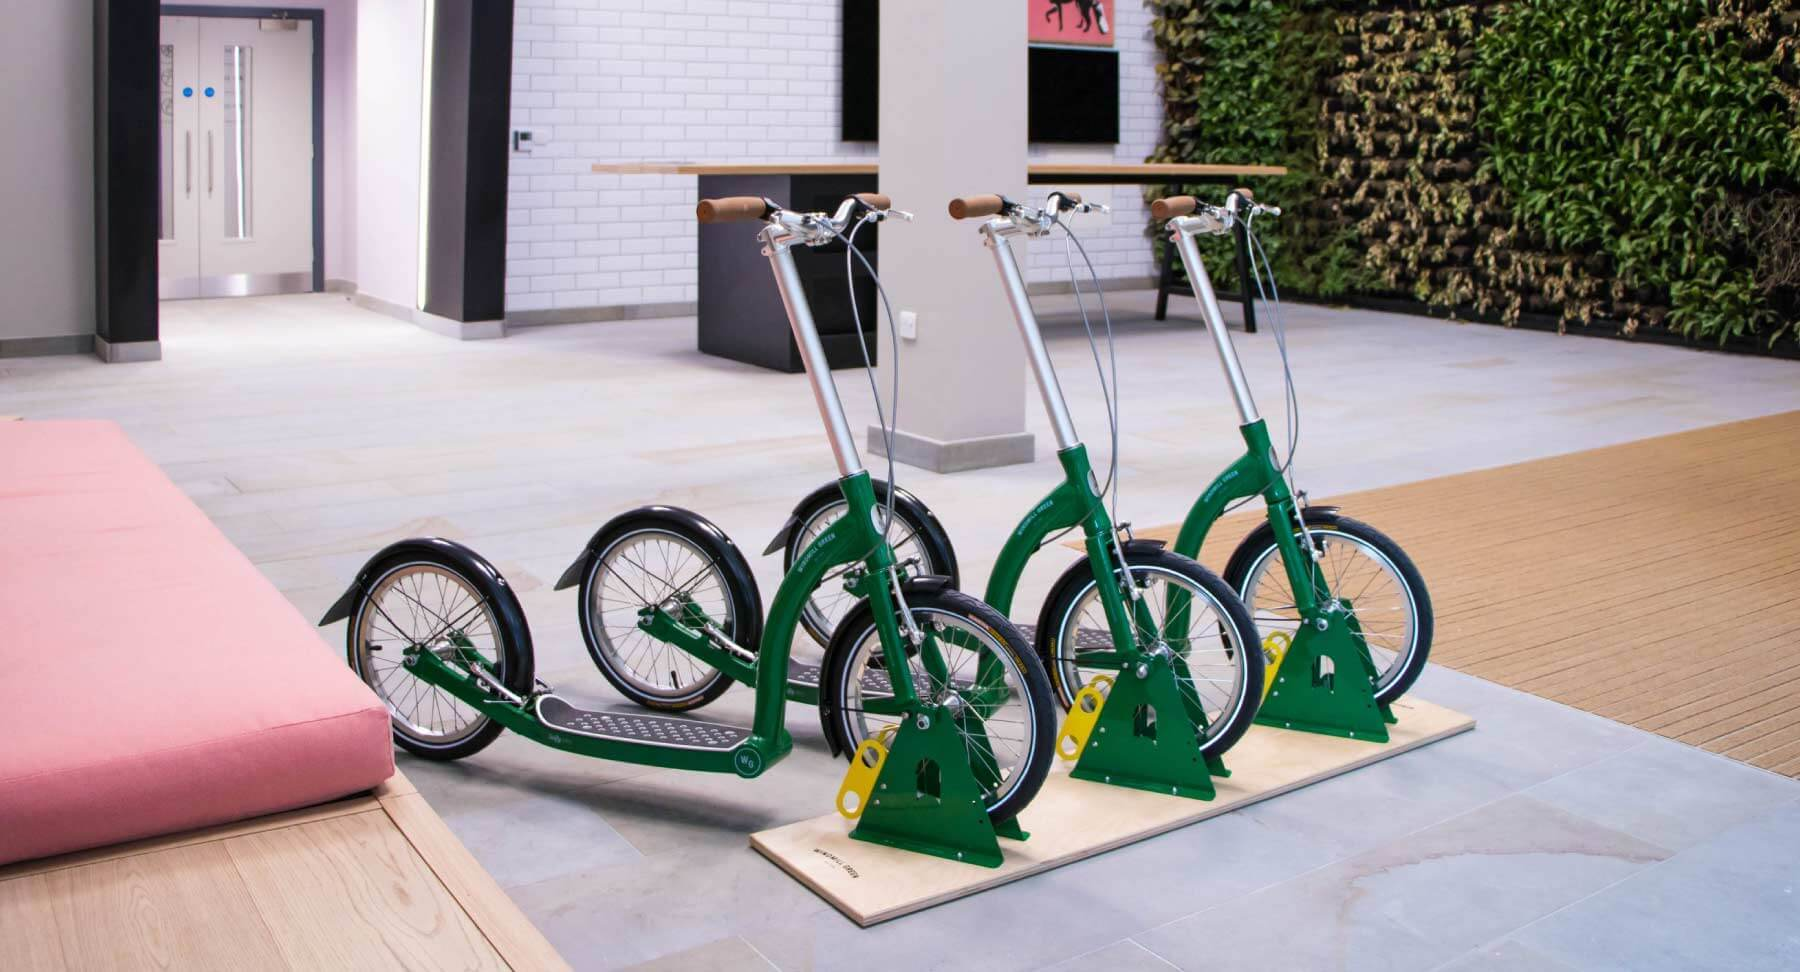 shared scooter fleet for businesses, shared mobility in city centres, up sell for holiday accommodation fleet